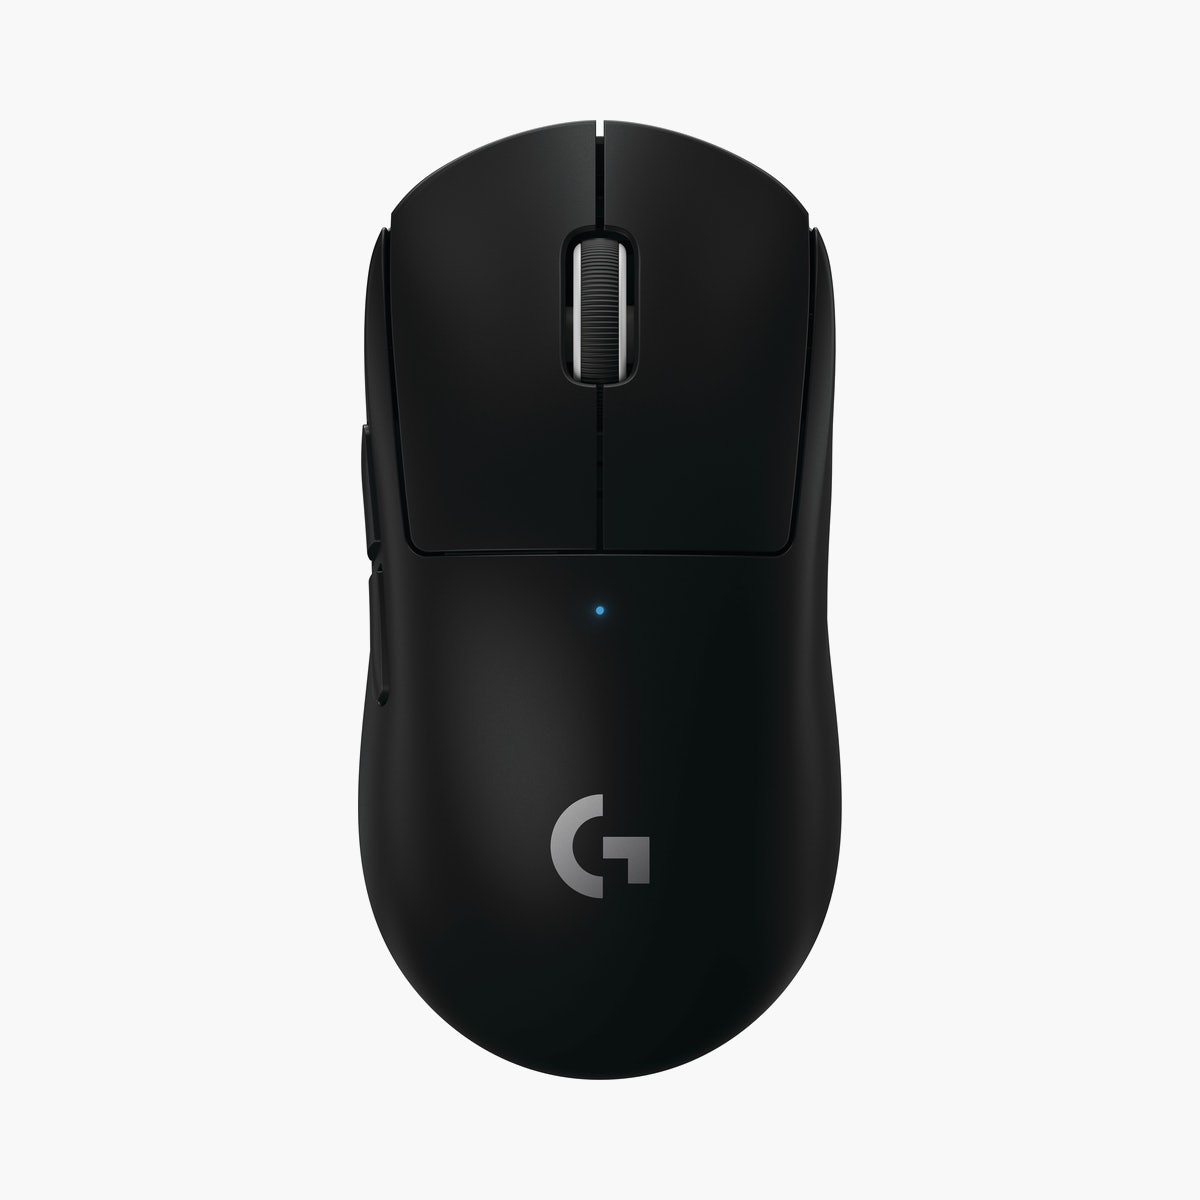 PRO X SUPERLIGHT Wireless Gaming Mouse